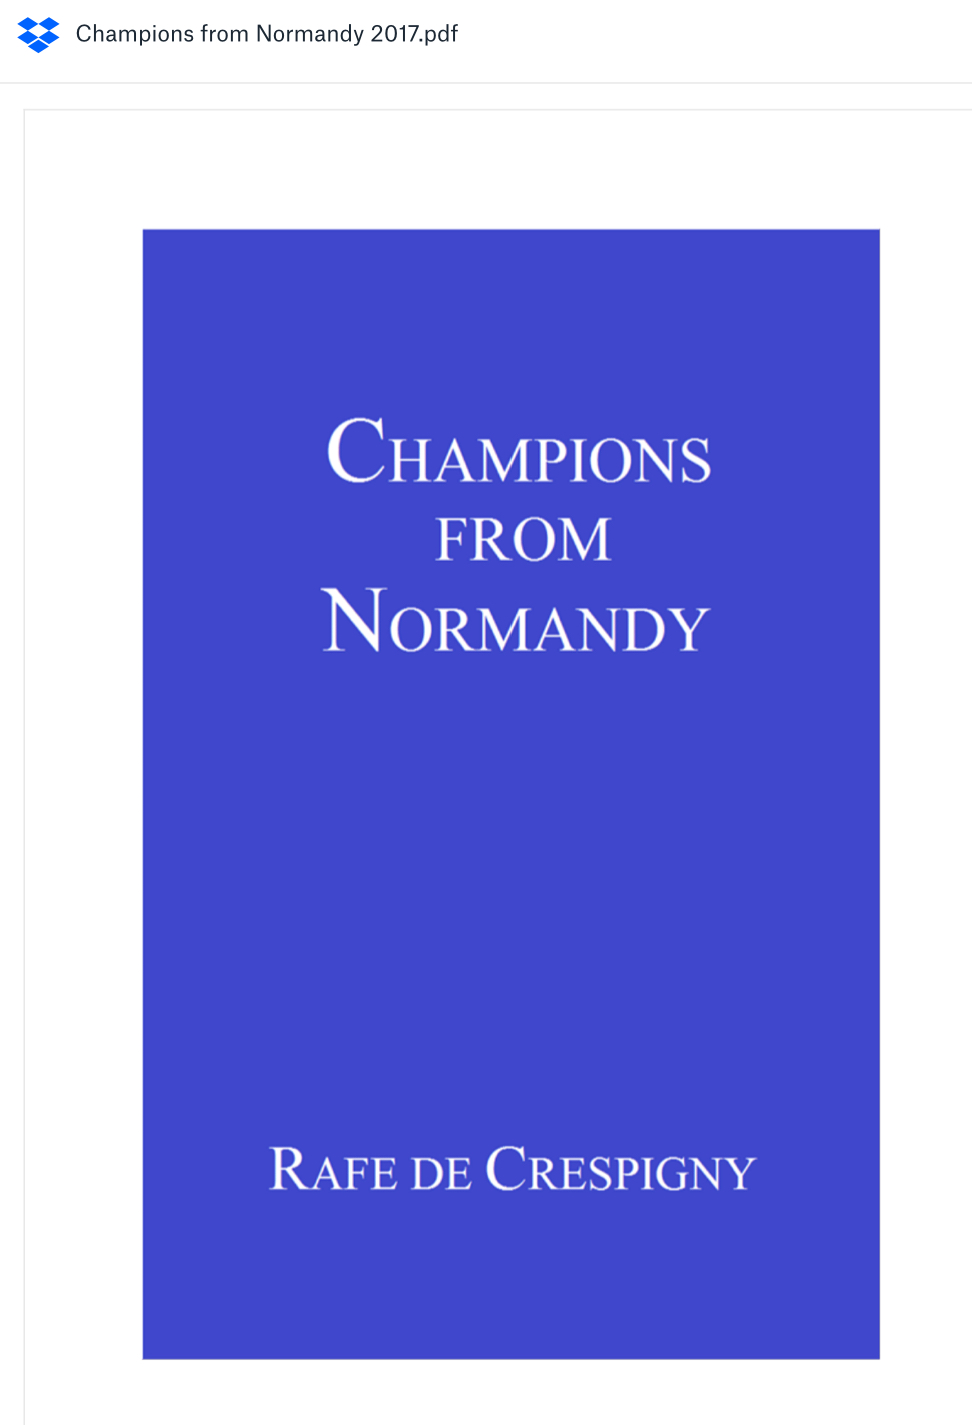 Champions from Normandy at DropboxA PDF version of Champions from Normandy can be downloaded from Dropbox